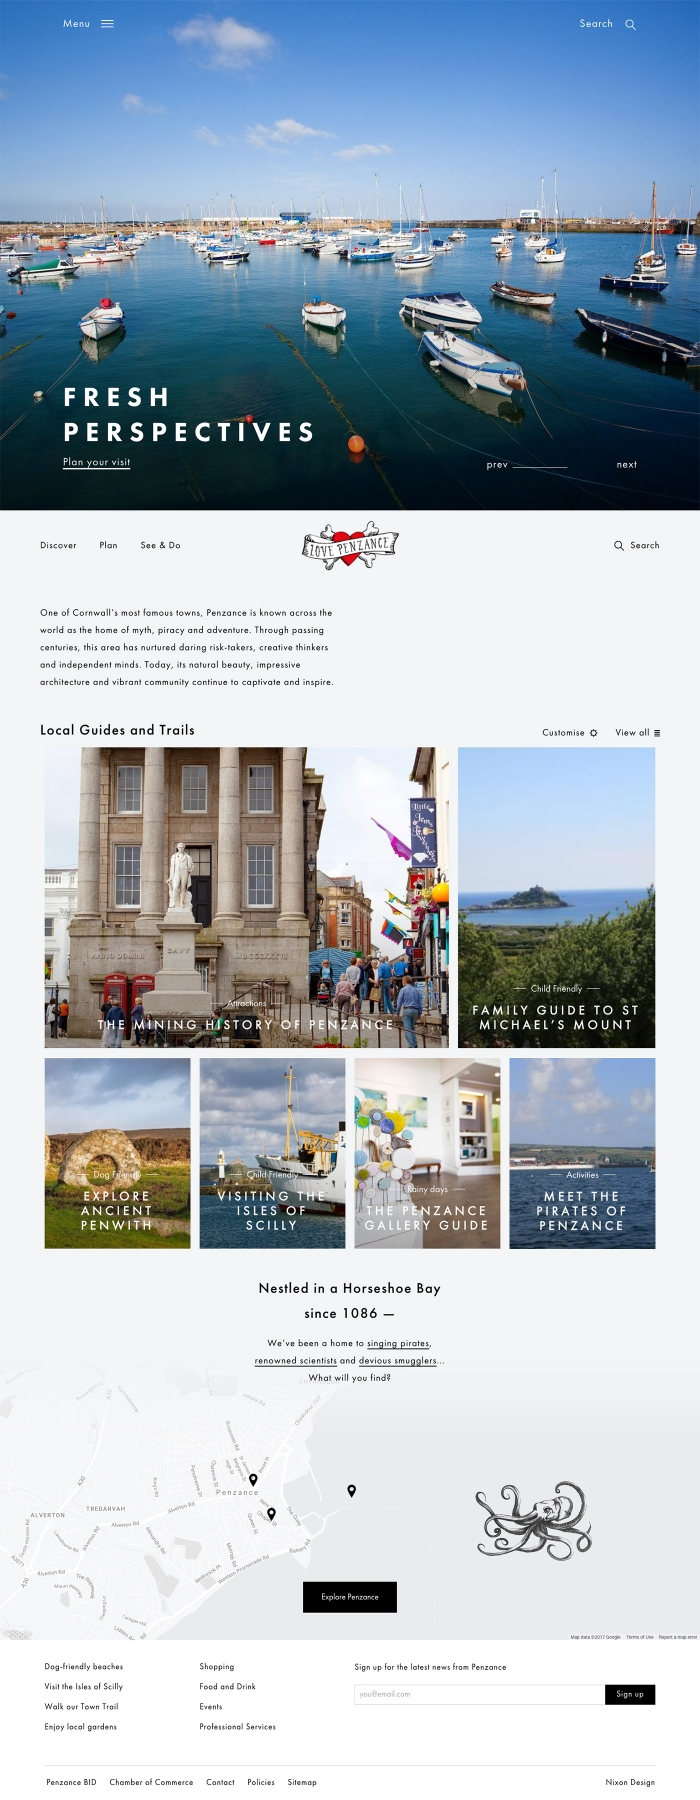 The Penzance website homepage.